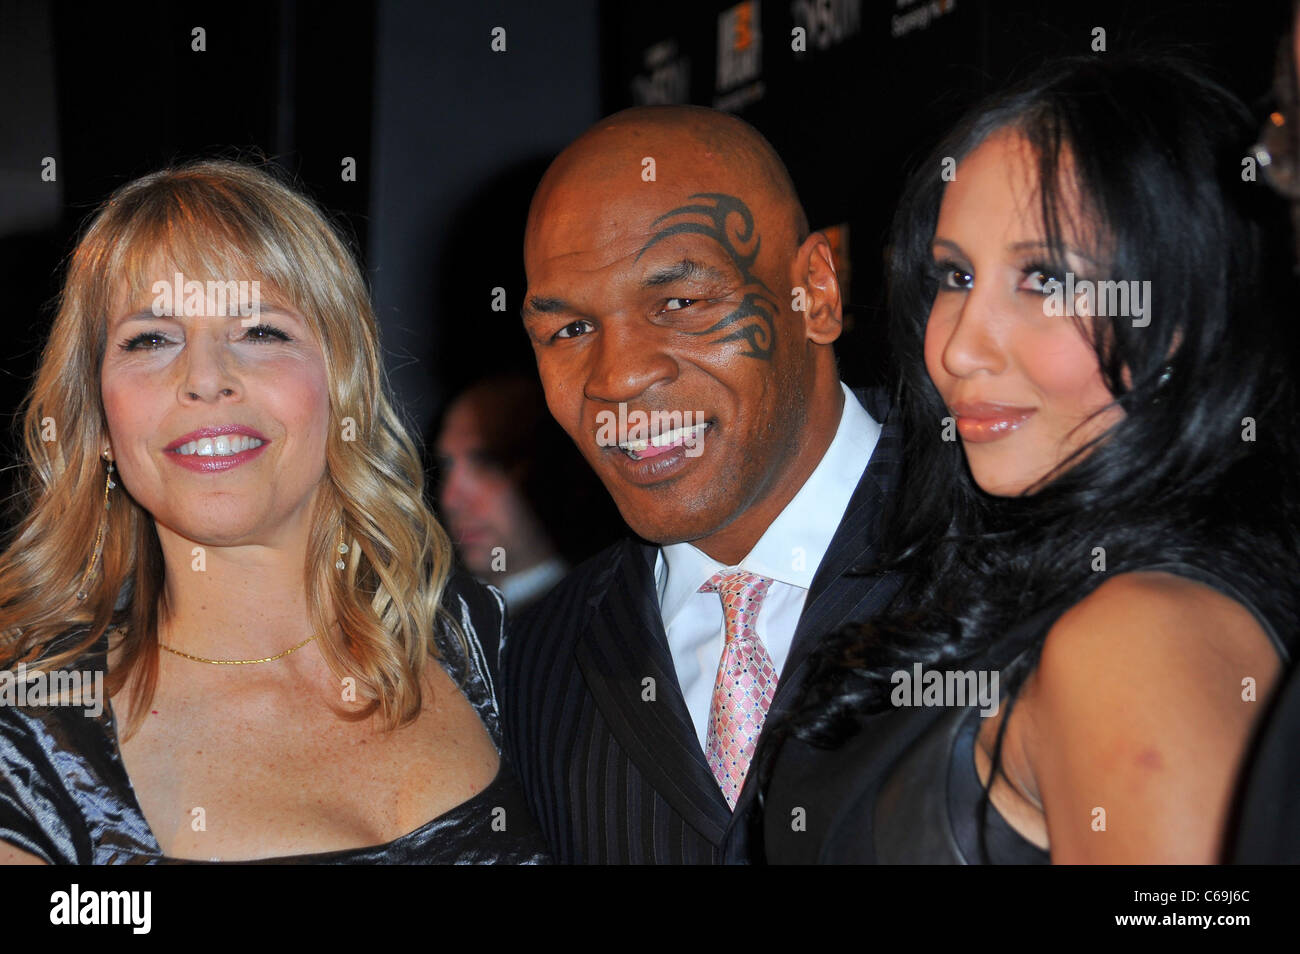 Marjorie Kaplan, Lakiha Spicer, Mike Tyson at arrivals for TAKING ON TYSON Series Premiere on Animal Planet, Hotel - Stock Image